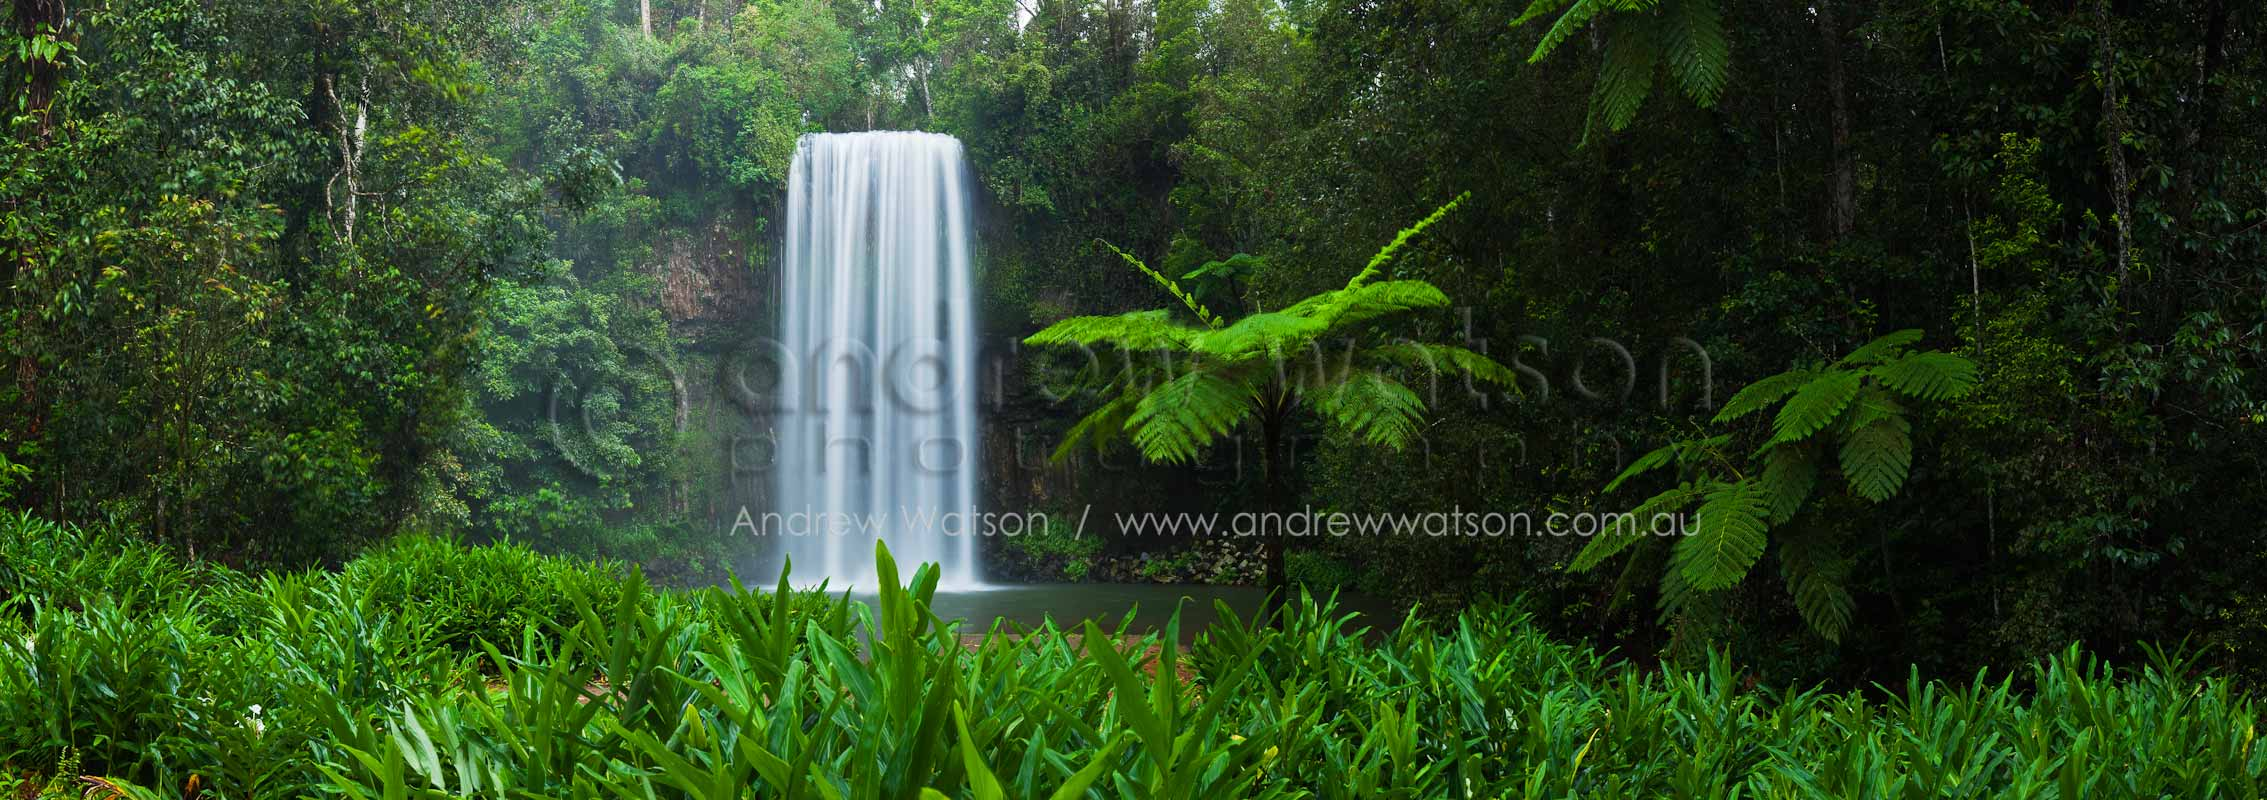 Tropical waterfall surrounded by tree ferns and rainforest